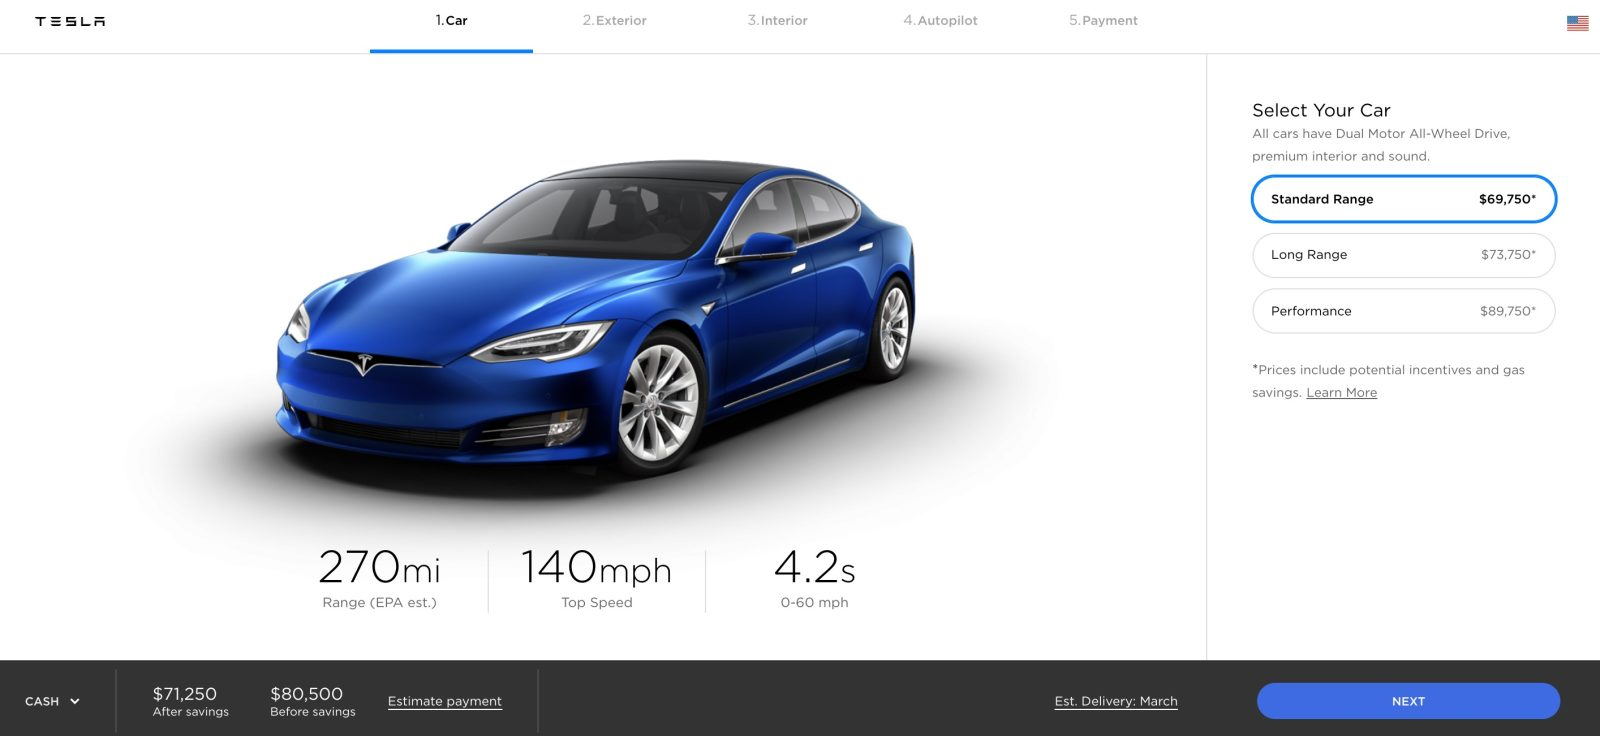 Tesla Releases New Model S Battery Pack Makes Mive Price Drop Kills Base X